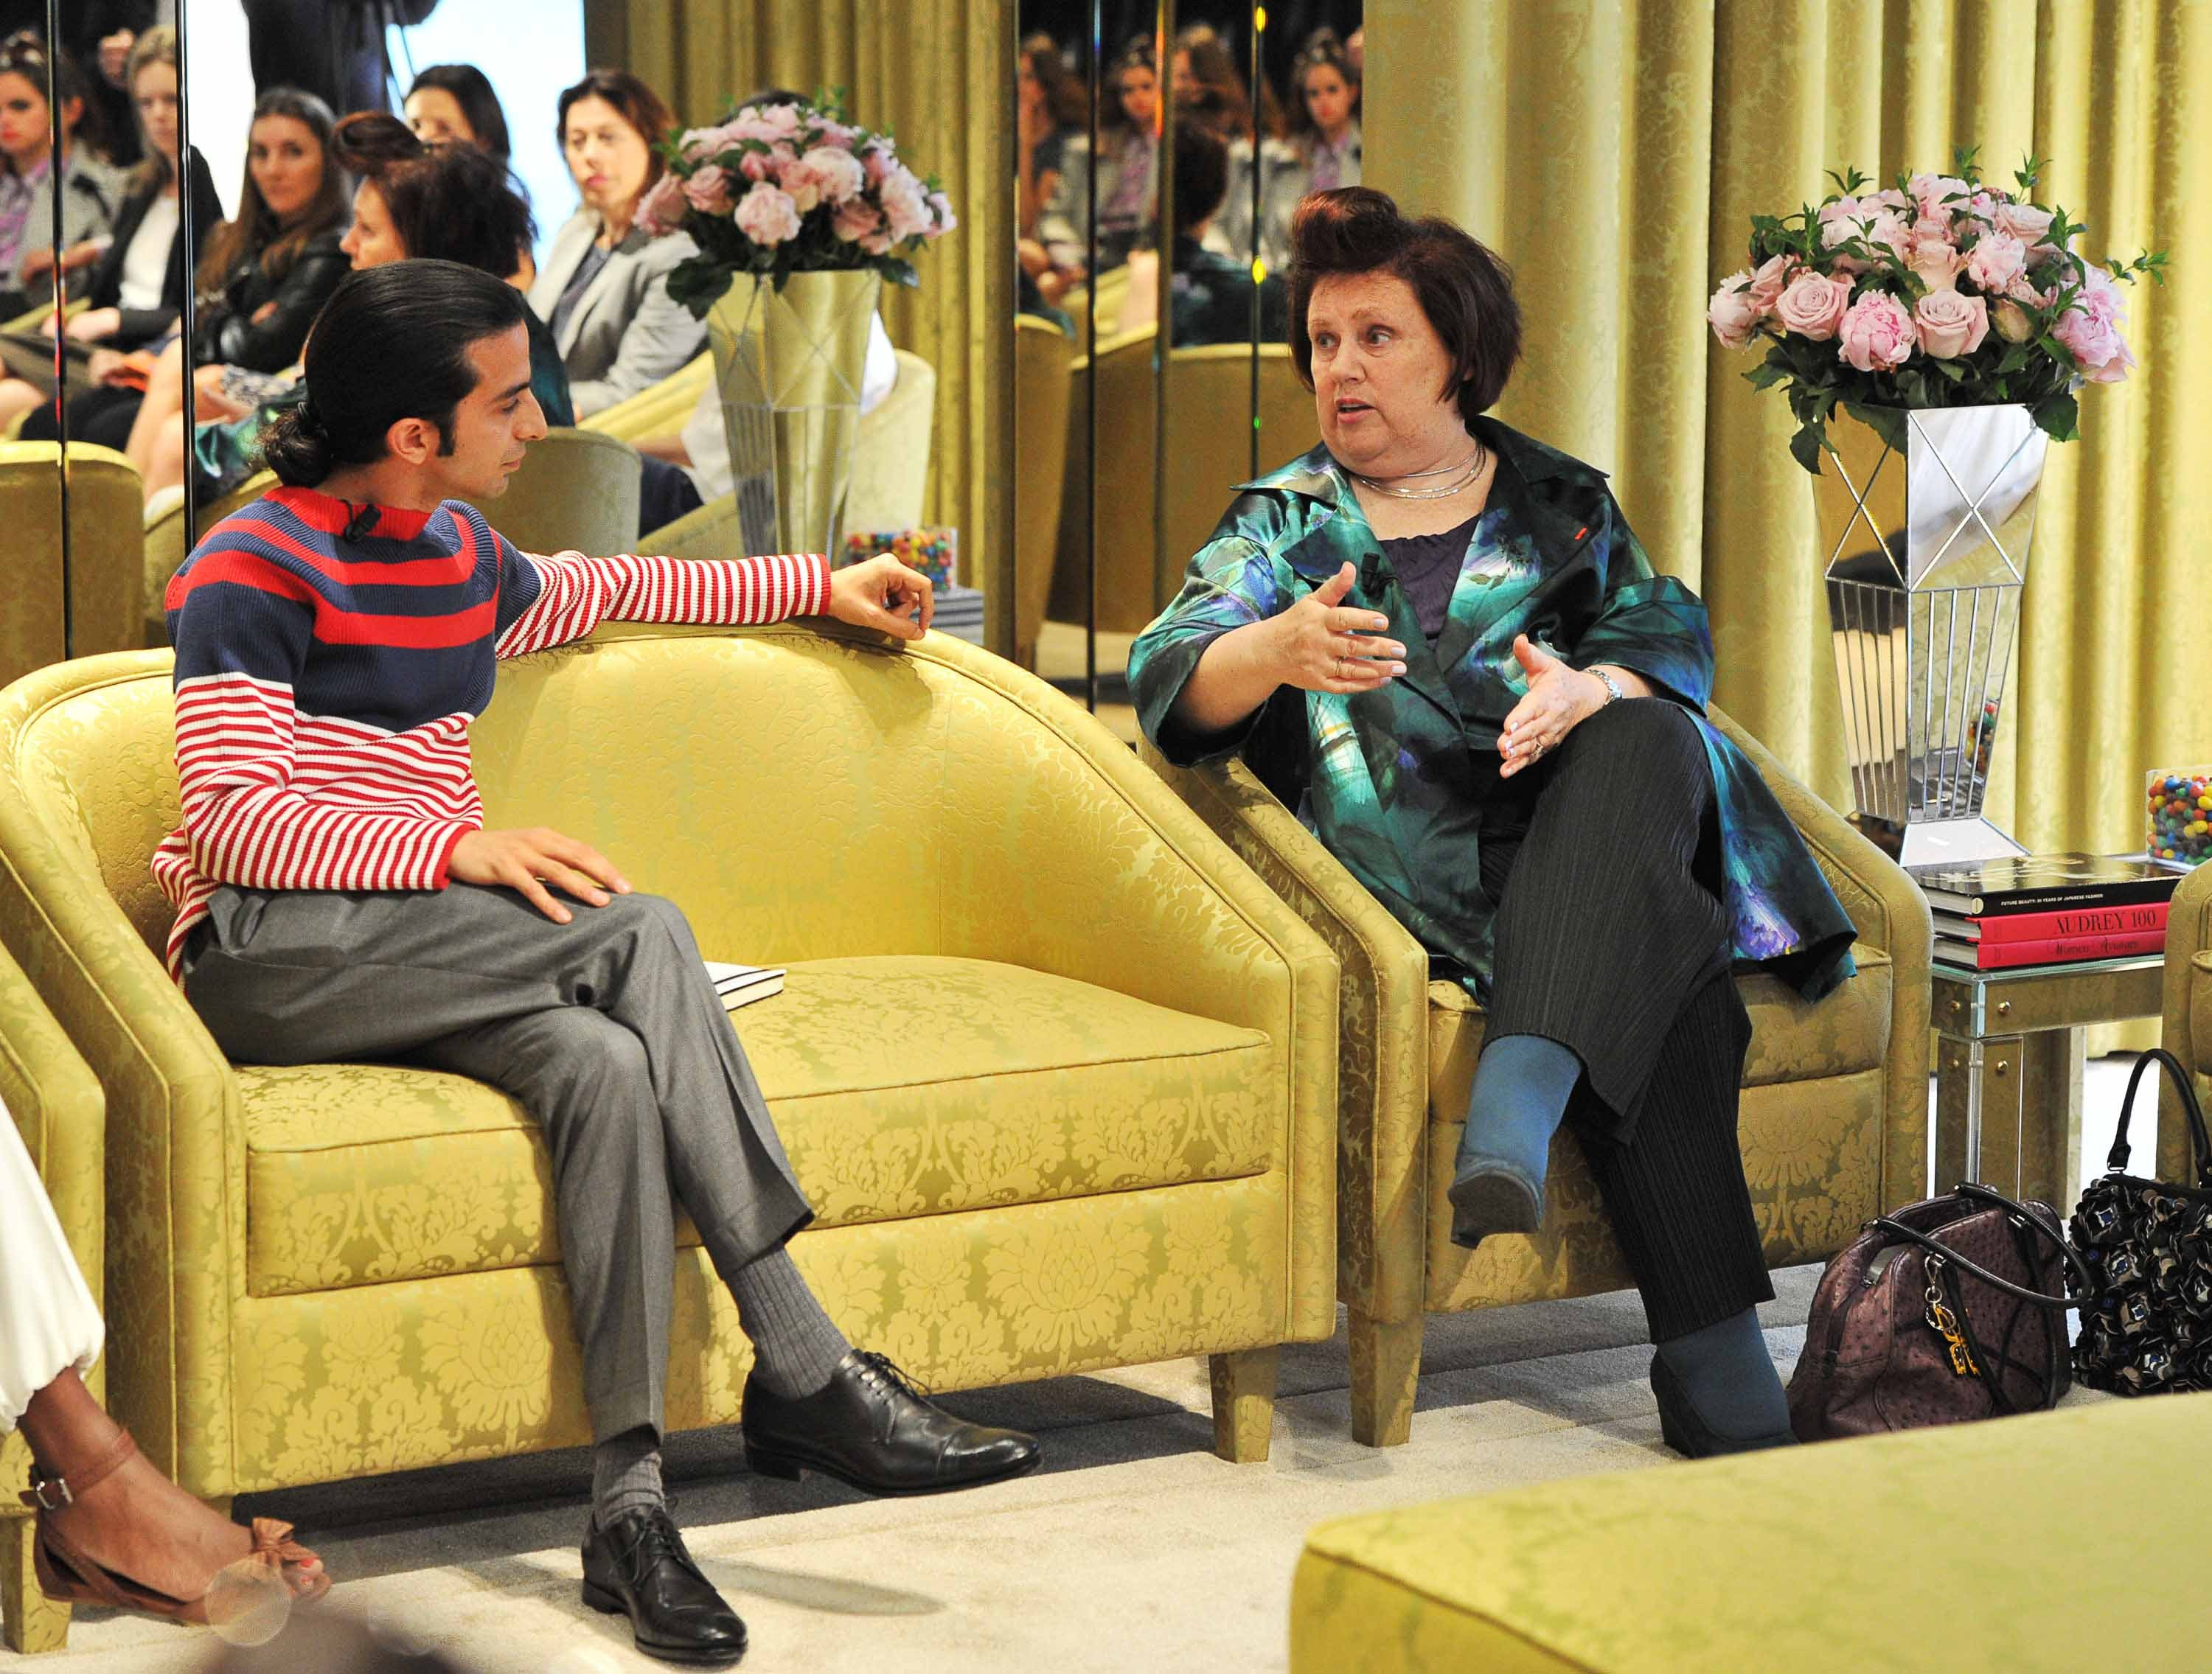 Imran Amed and Suzy Menkes of the  International Herald Tribune | Source: Miu Miu